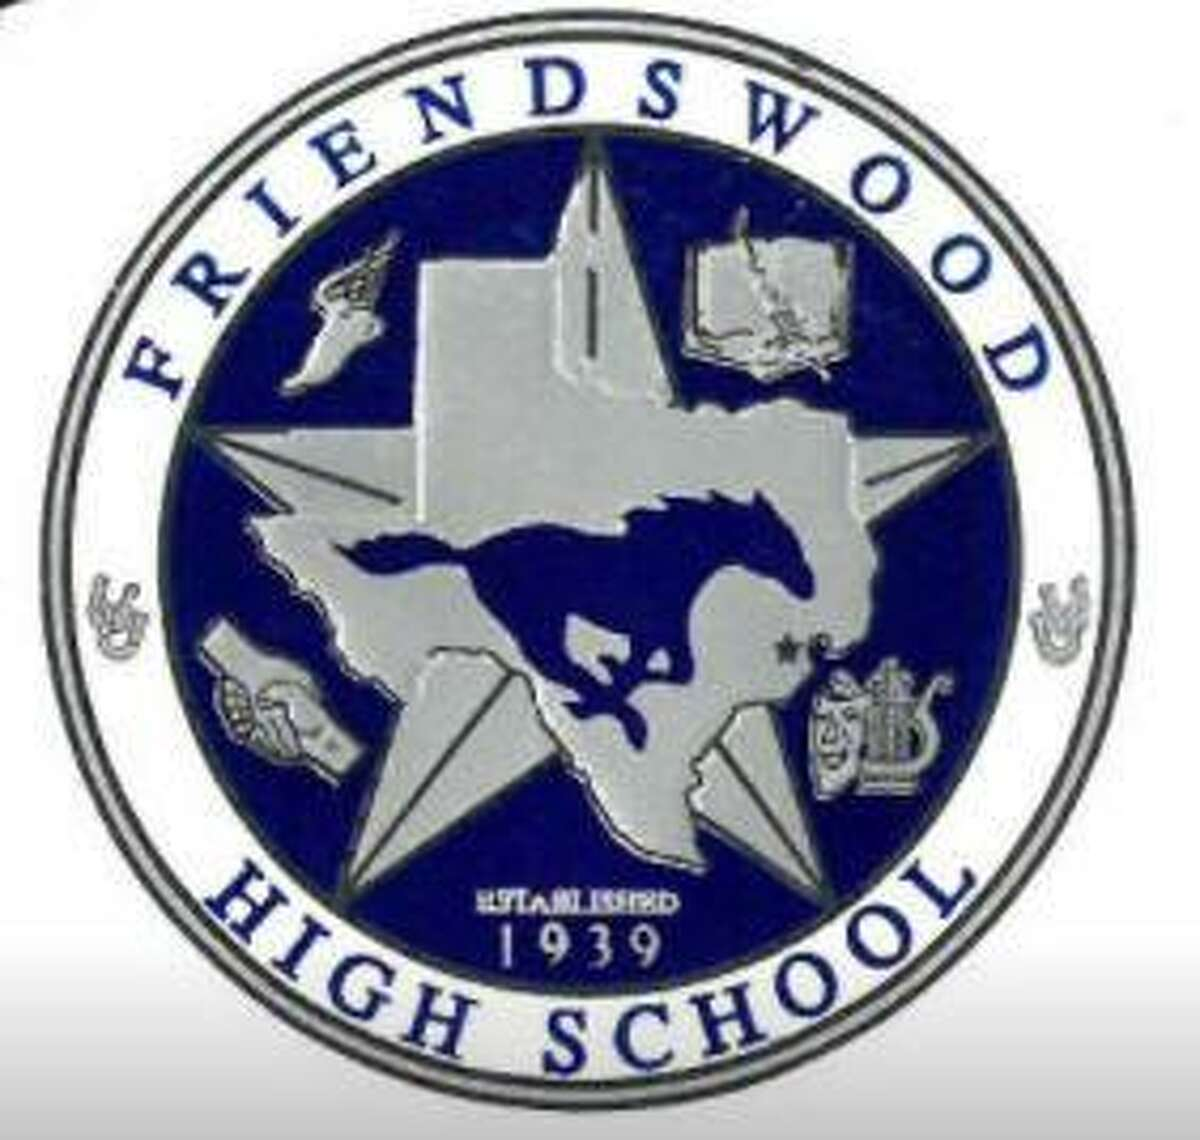 A proposed $128 million bond package for Friendswood ISD would provide a $53.4 million makeover for Friendswood High School that would add class spaced and a new fine arts wing. The portion of the school that houses the career and technology classrooms would also be renovated. A committee's plan also recommends building a new gymnasium and reconfiguring the campus' athletic field.